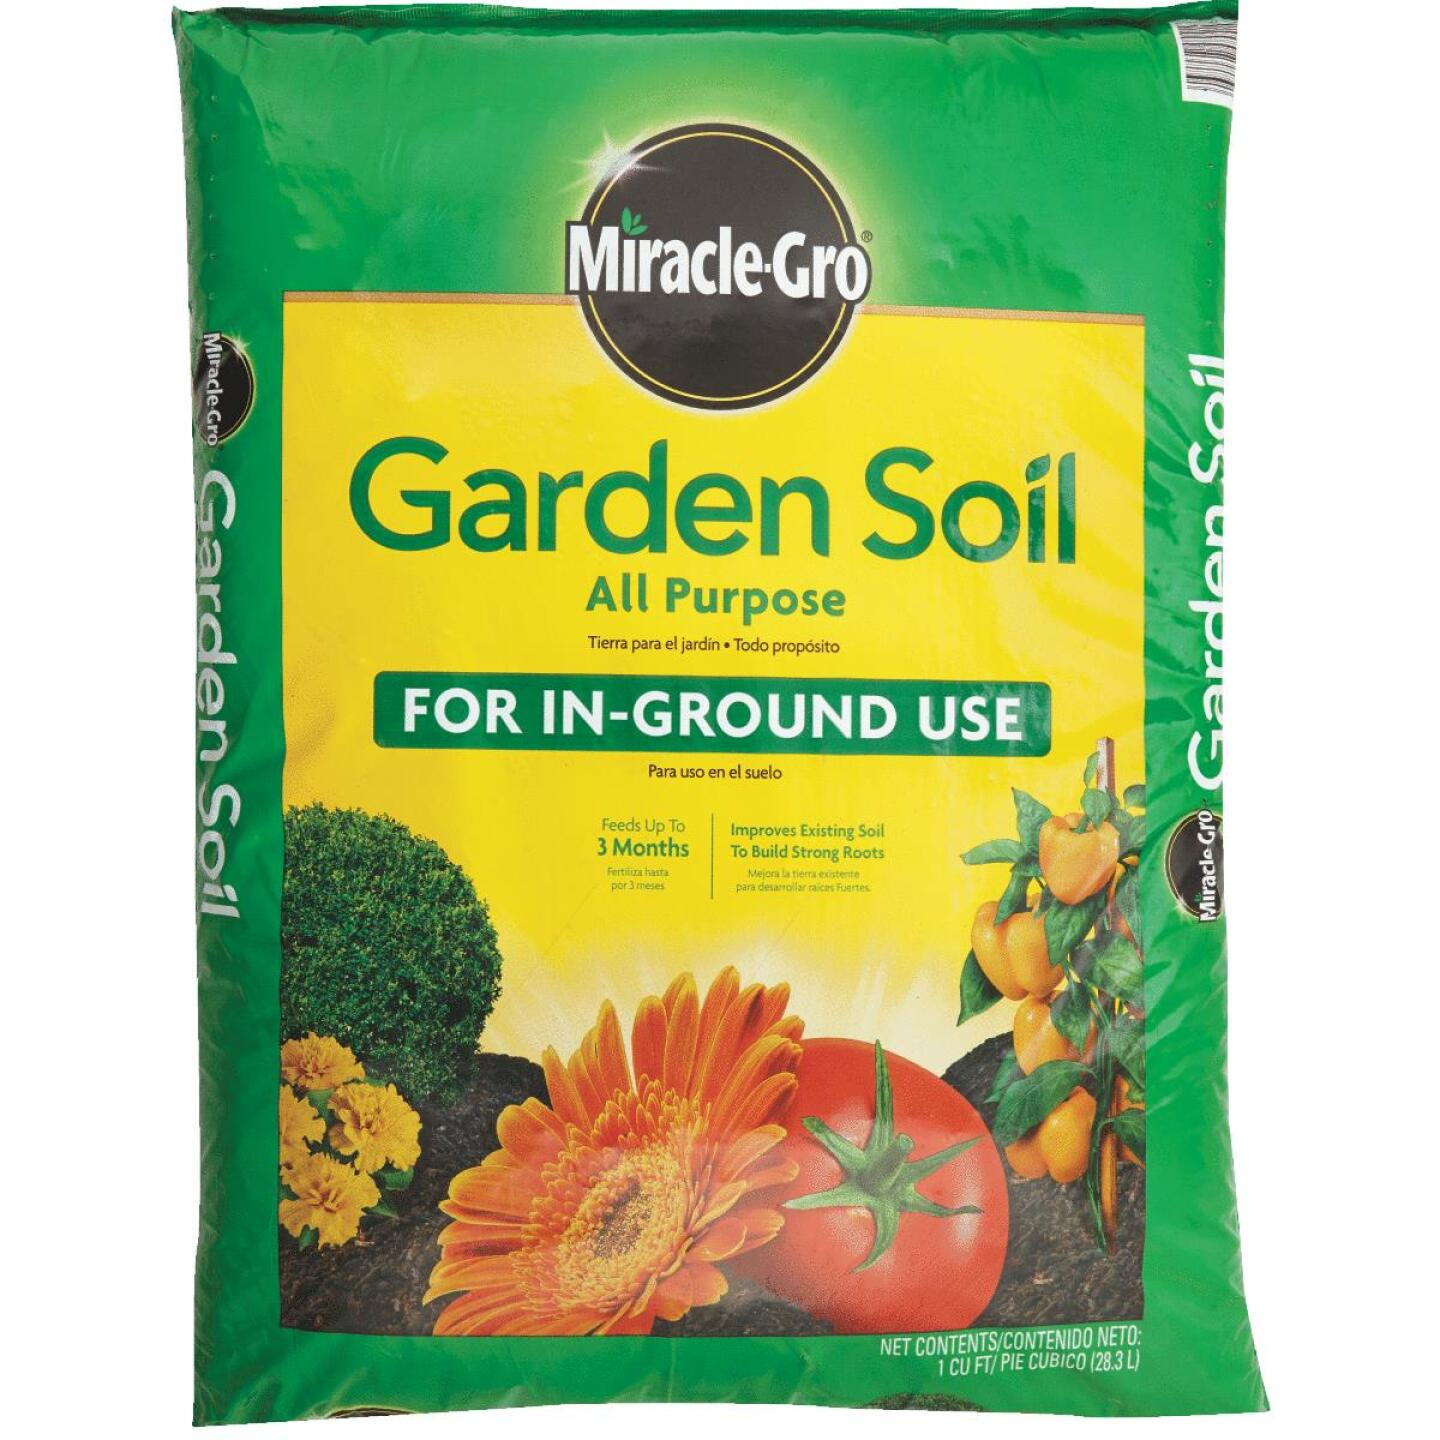 Miracle-Gro 1 Cu. Ft. 36 Lb. All Purpose Garden Soil Image 2